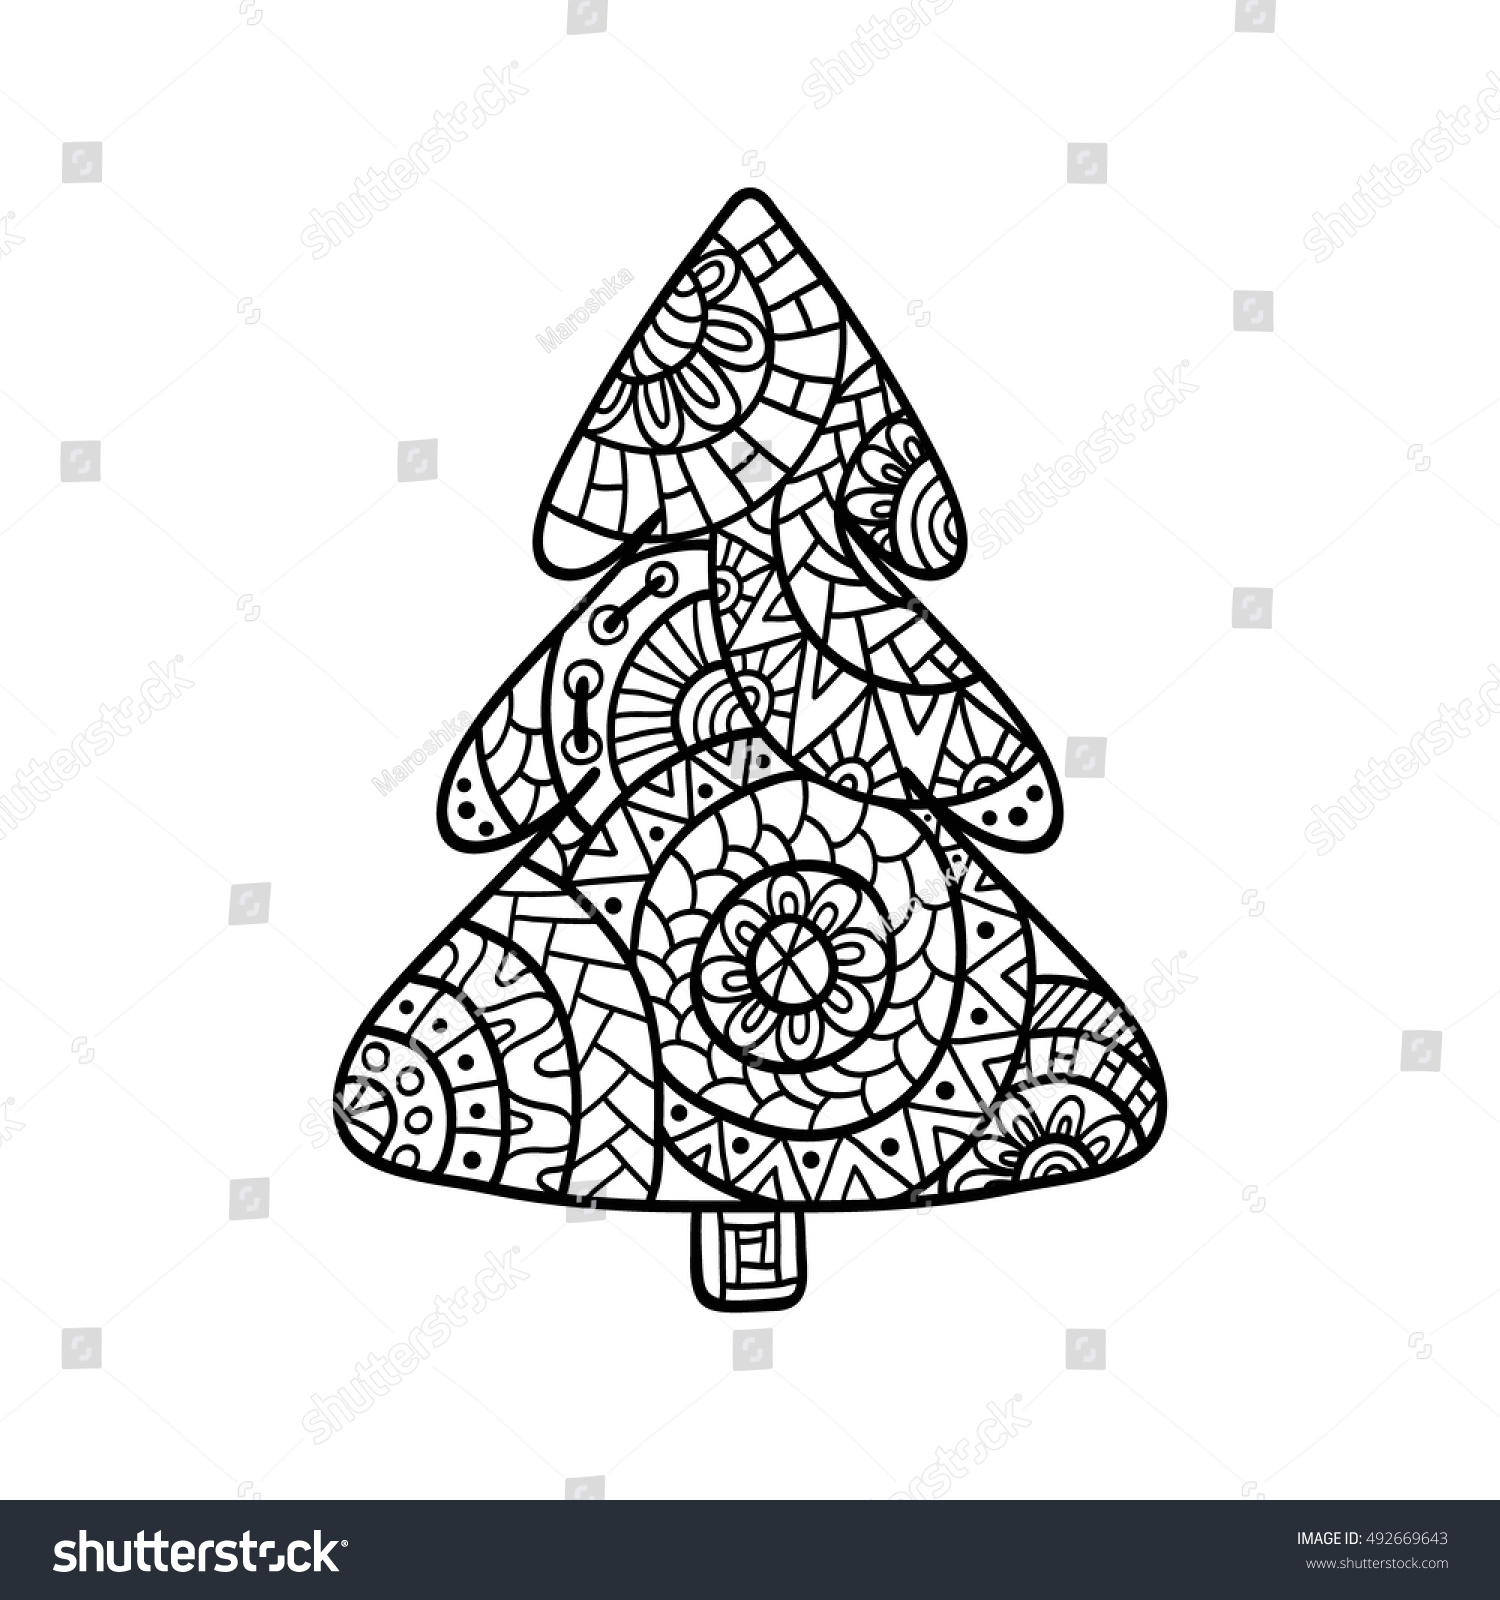 Christmas Tree Coloring Page High Details Stock Vector (Royalty Free ...